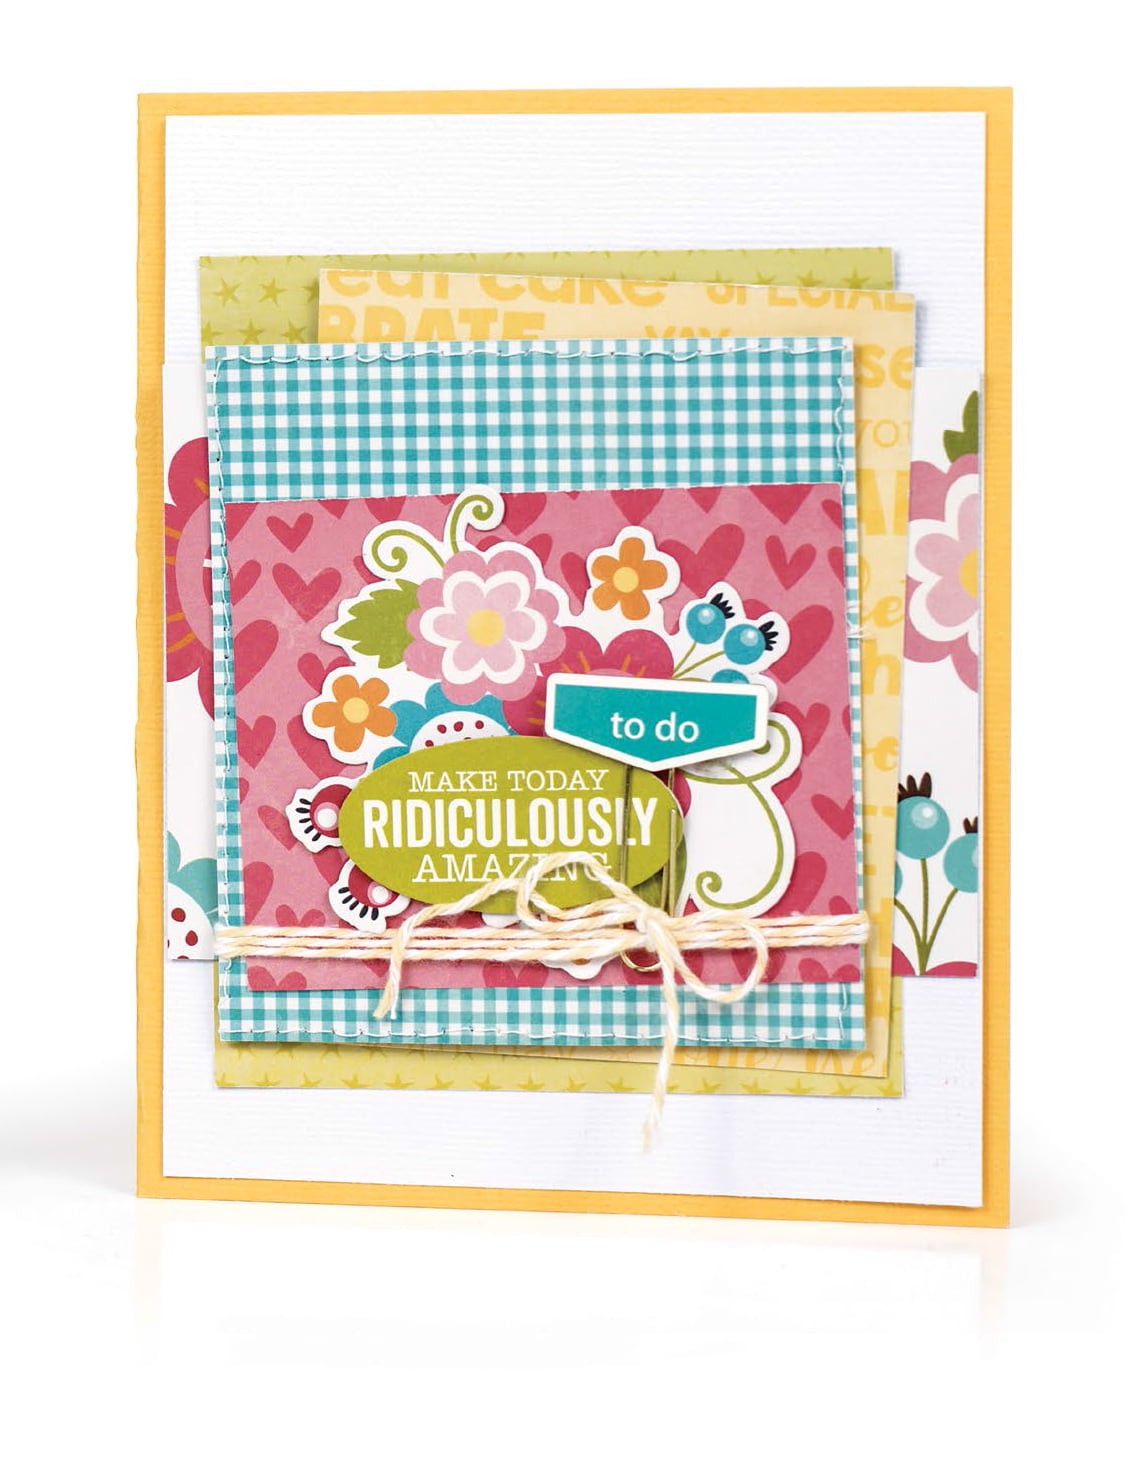 Ridiculously Amazing by Amy Coose for Scrapbook & Cards Today